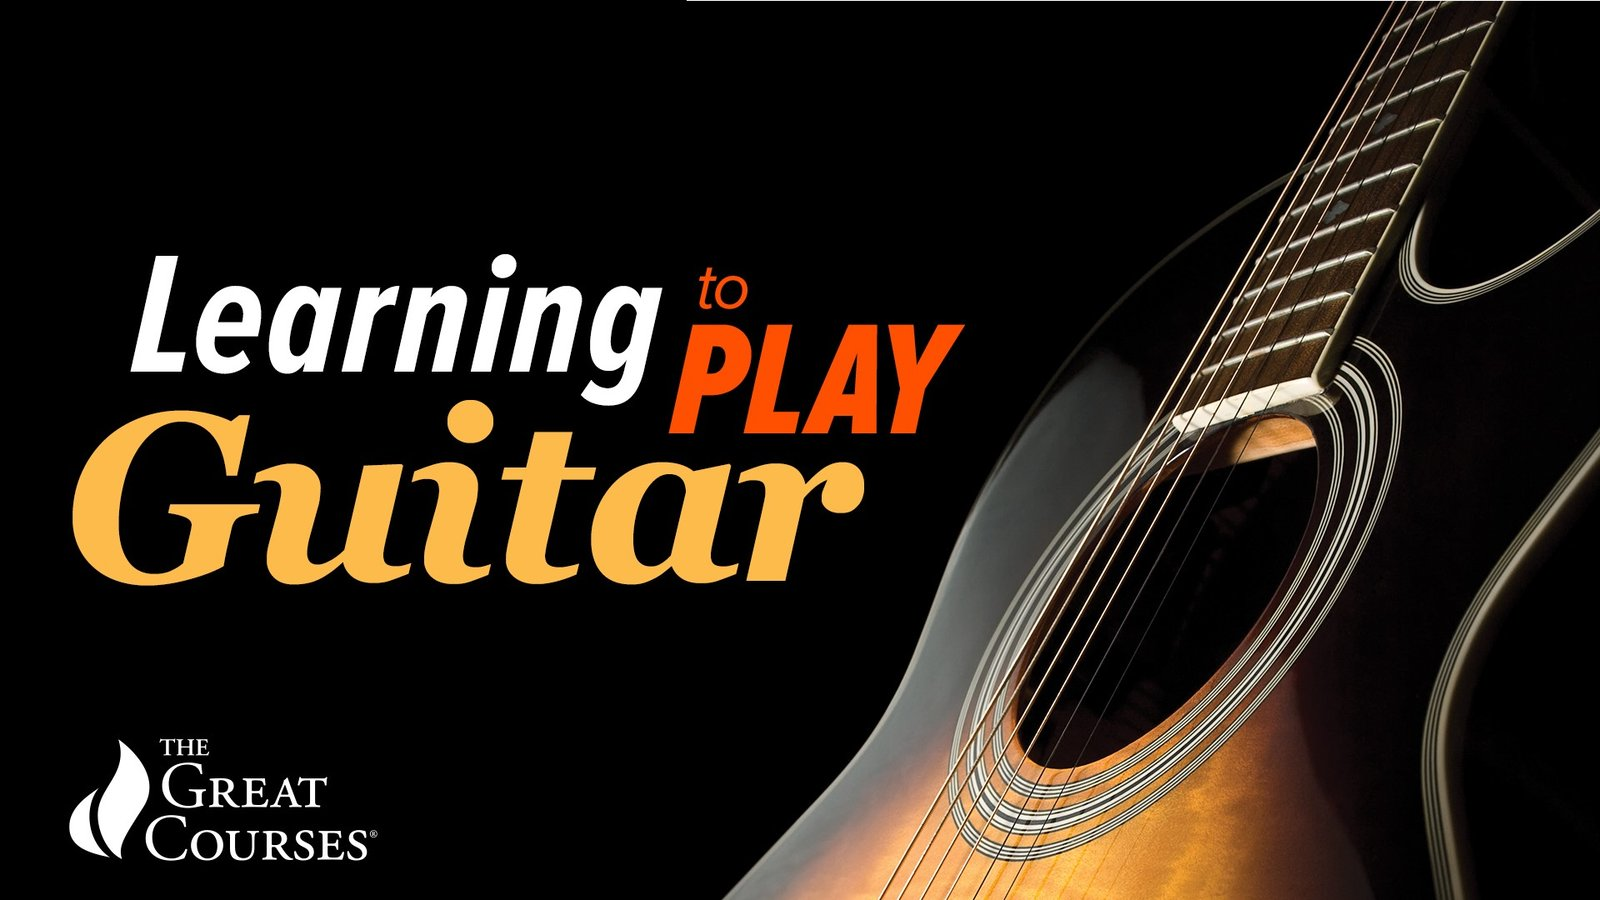 Learning to Play Guitar - Chords, Scales, and Solos